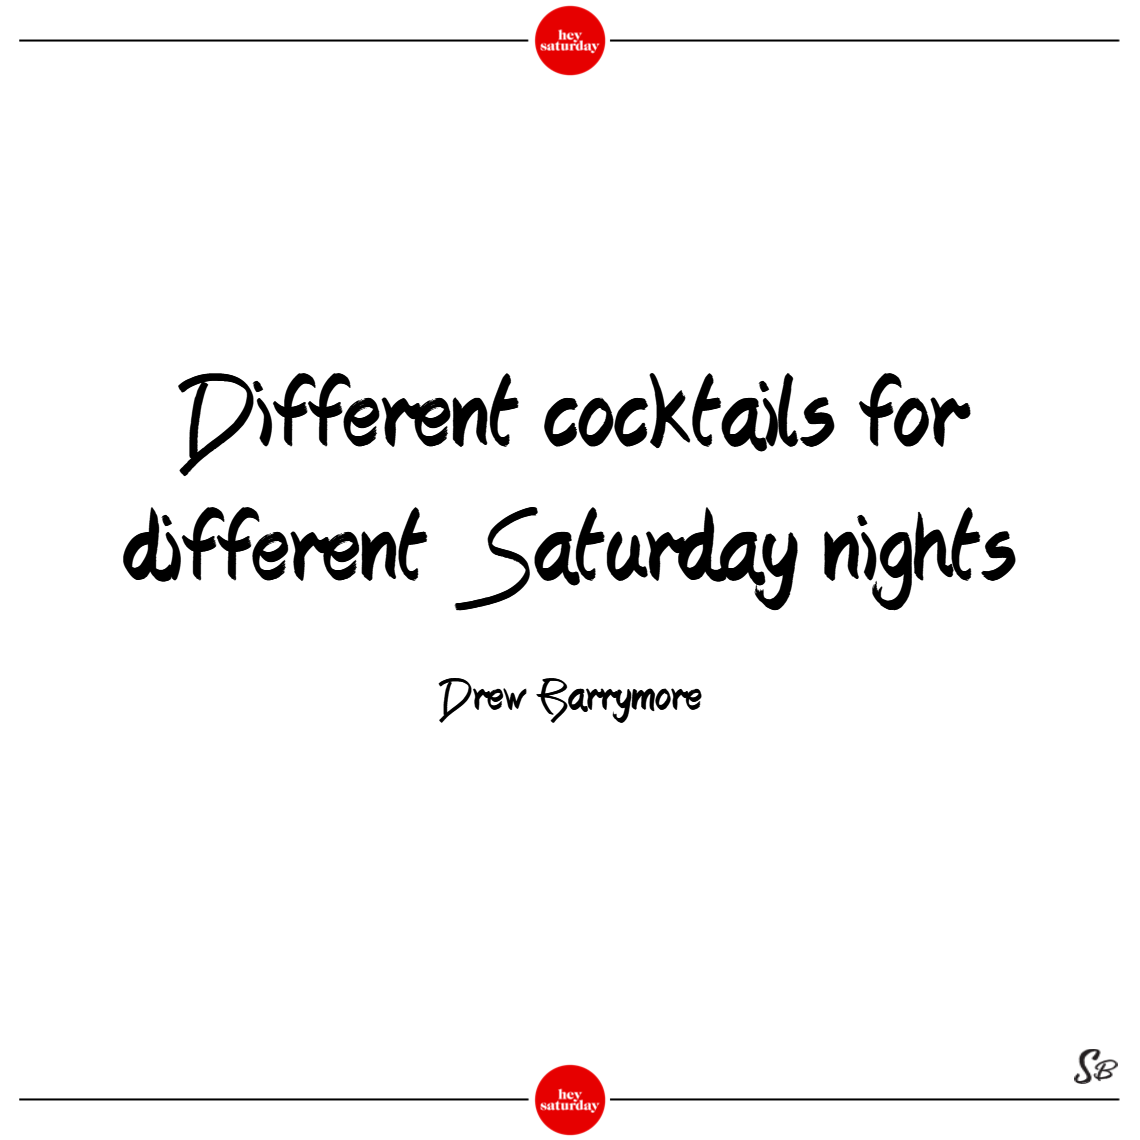 Different cocktails for different saturday nights. – drew barrymore